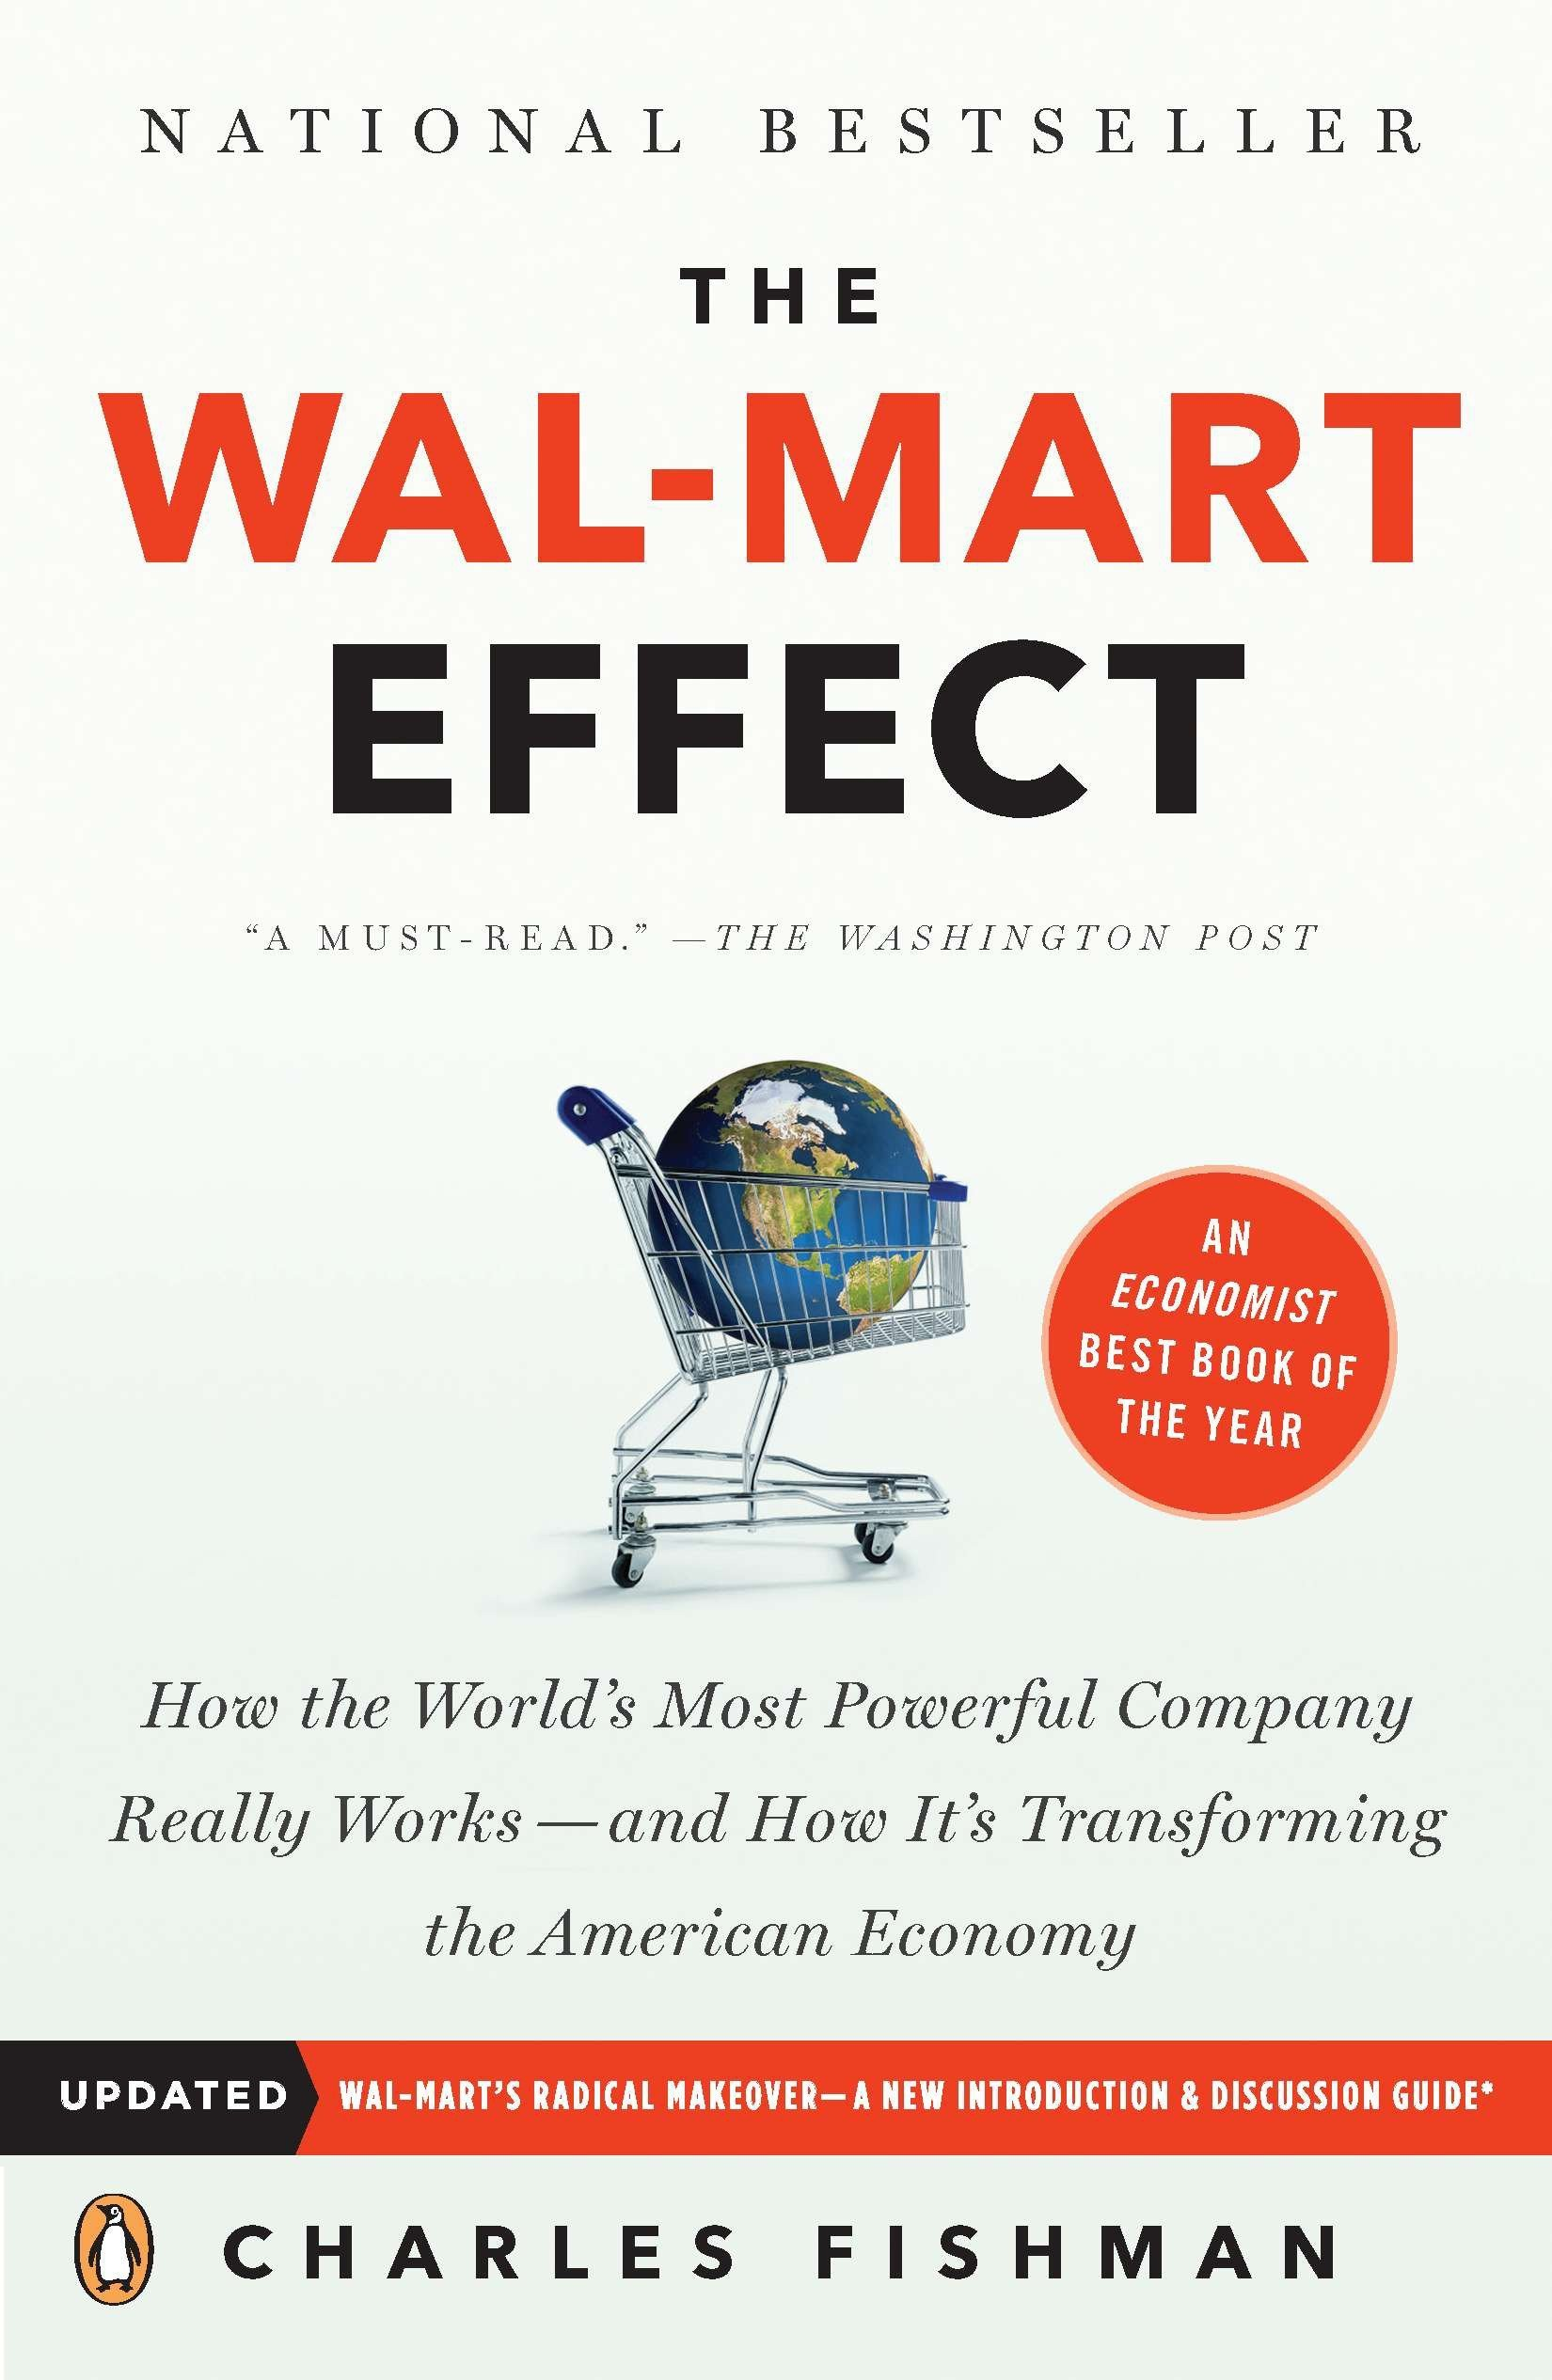 The Wal-Mart Effect: How the World's Most Powerful Company